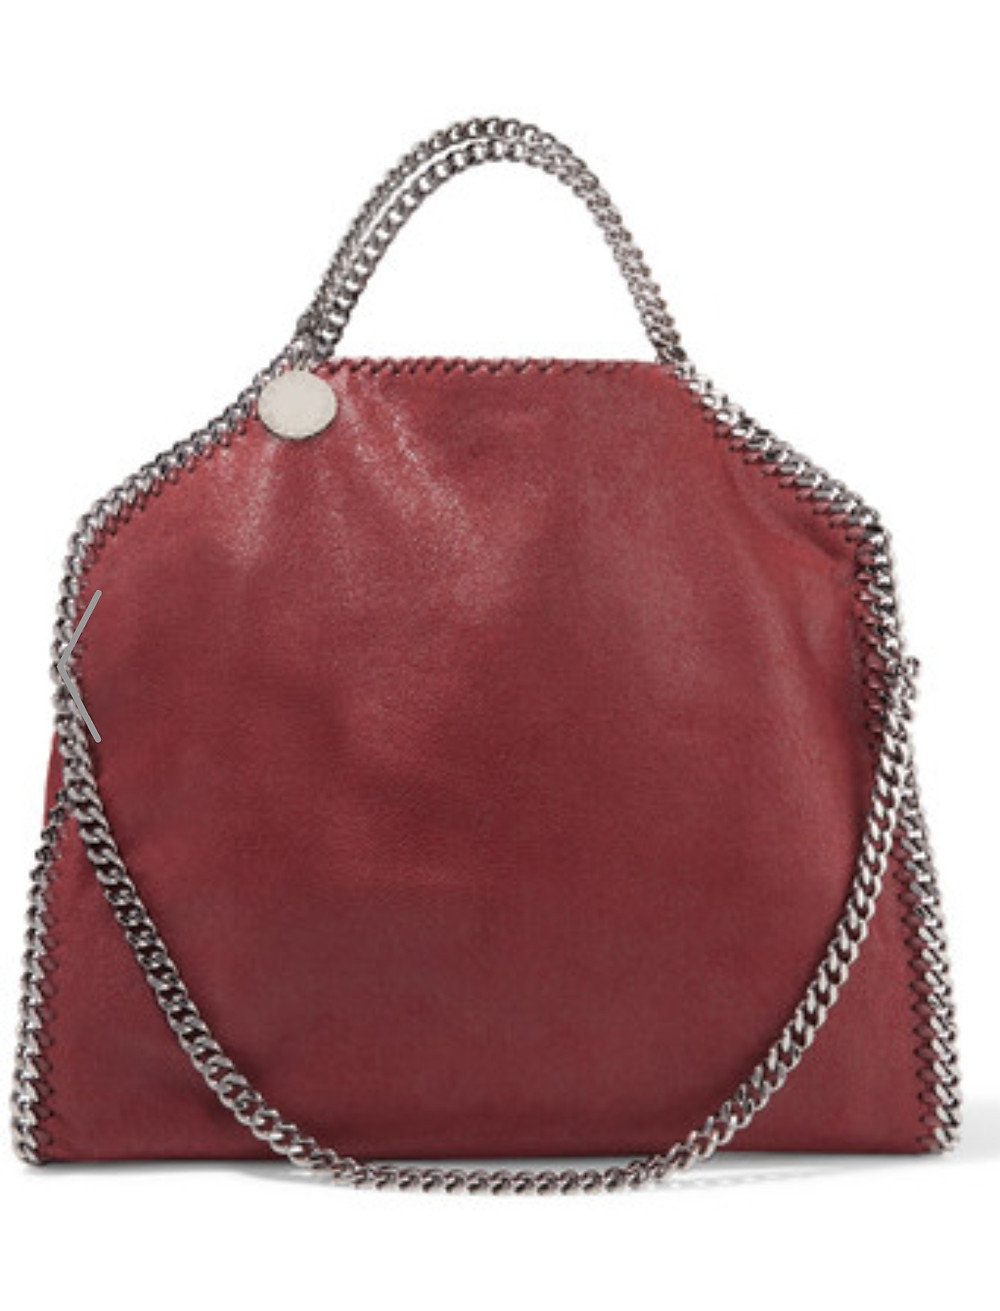 Stella Mc Cartney - vegan leather bag